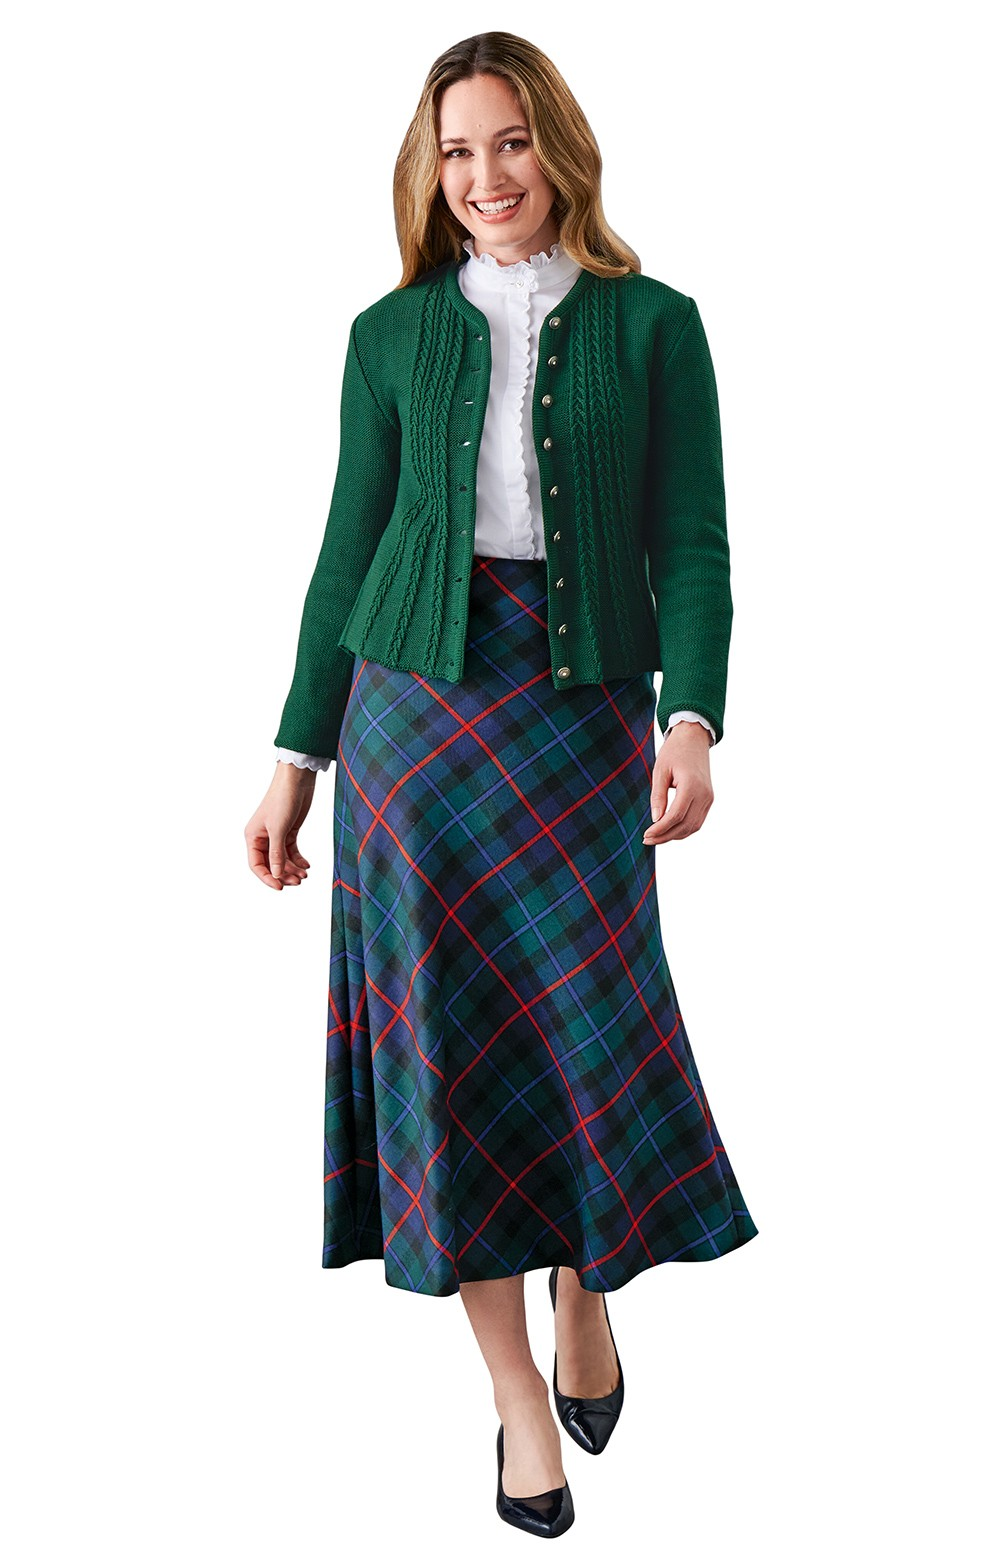 bf9ee90d37 Ladies Plaid Bias Skirt - House of Bruar